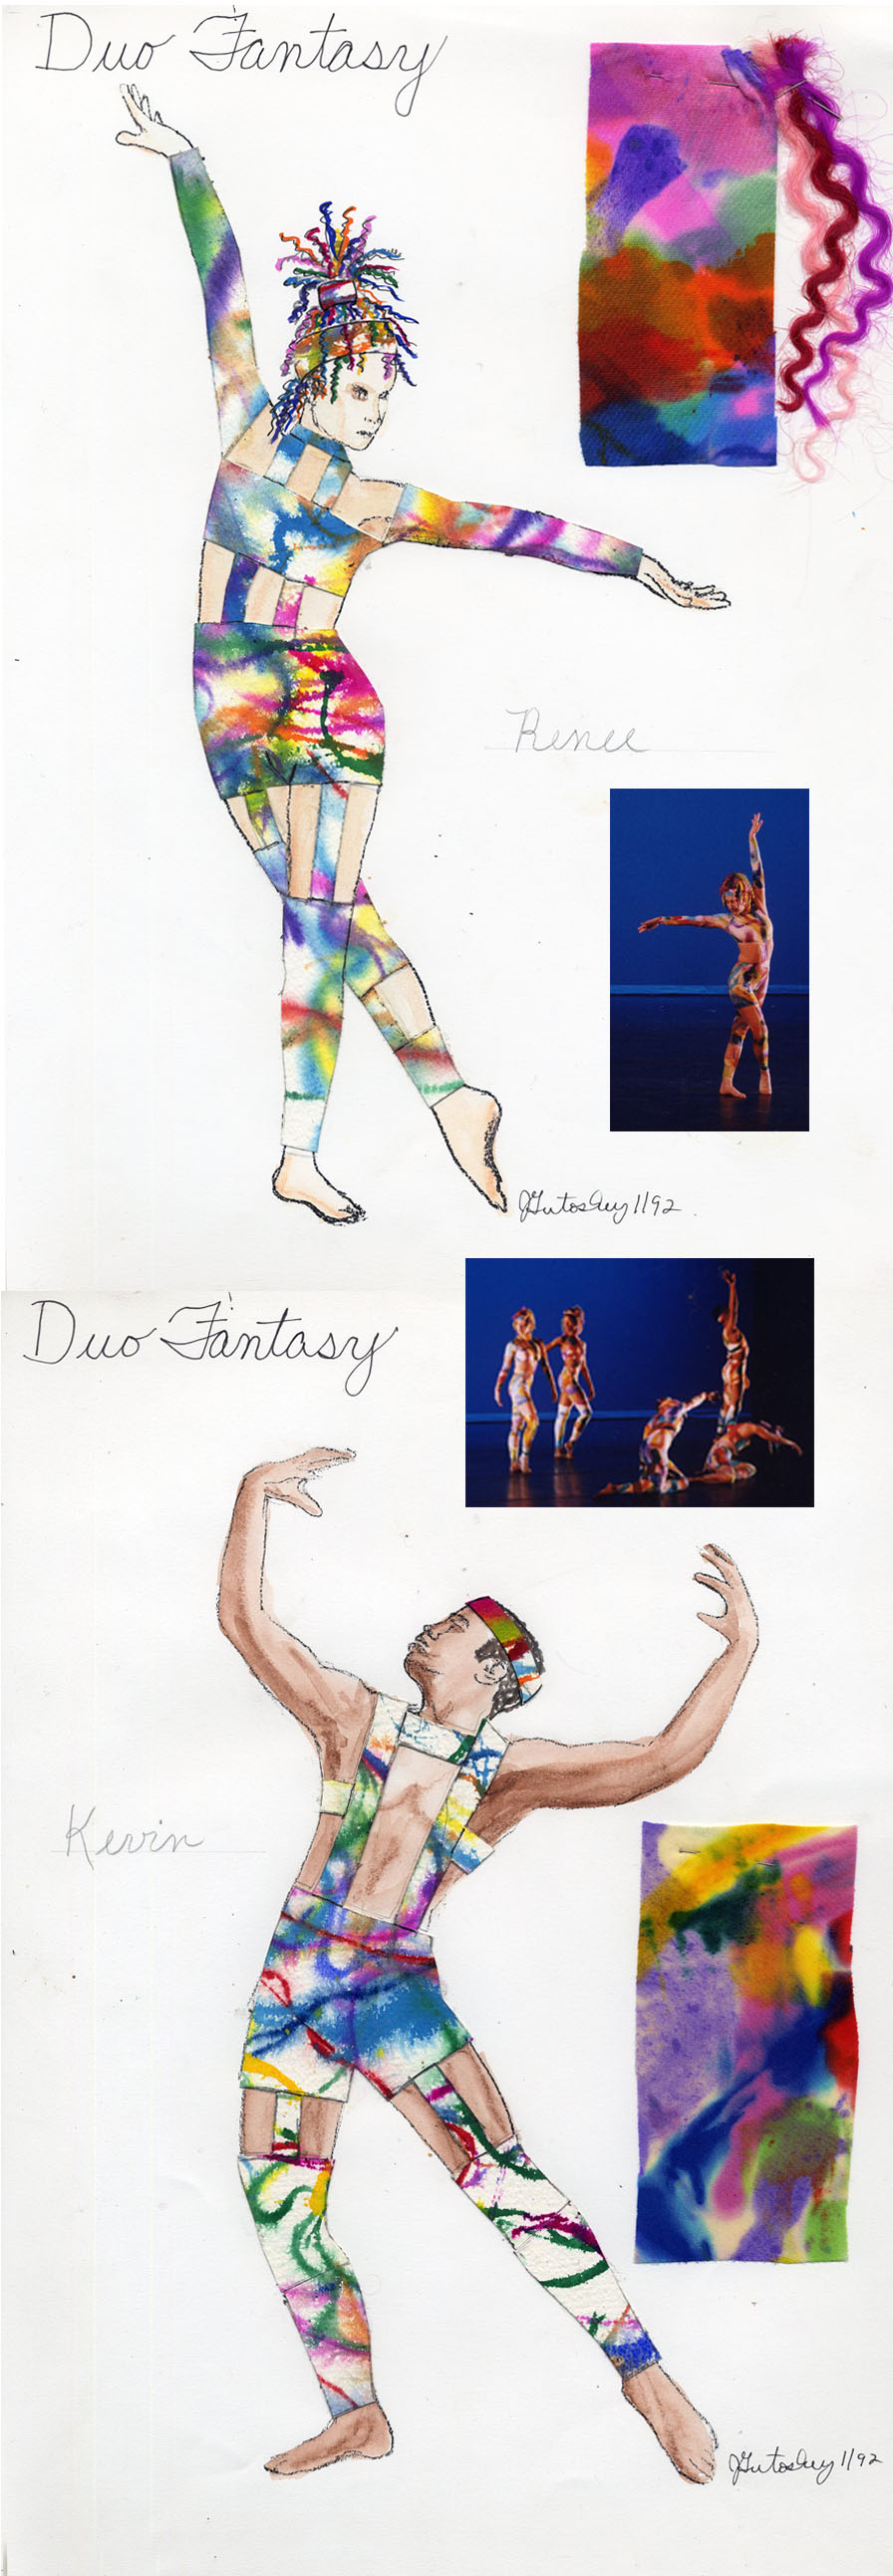 "My costume designs for Linda Sprigg\'s dance, ""Duo Fantasy\"", at the University of Michigan\'s Power Center Ann Arbor, Michigan 1992.  I hand dyed the fabric for 9 of these cut-out unitards. I made the head dresses with colored synthetic hair."